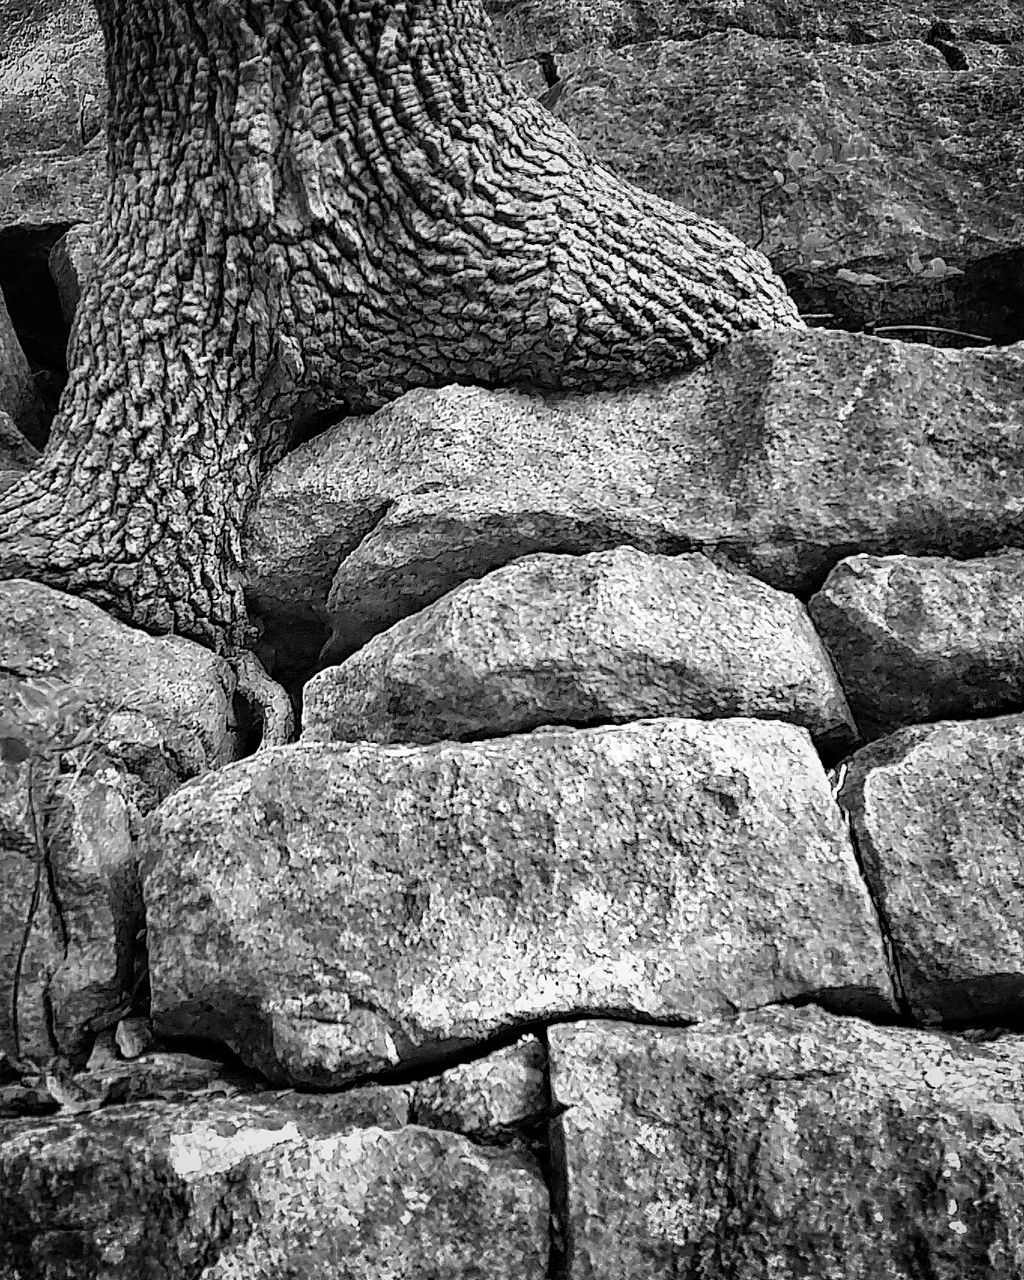 rock - object, no people, day, outdoors, textured, nature, full frame, backgrounds, close-up